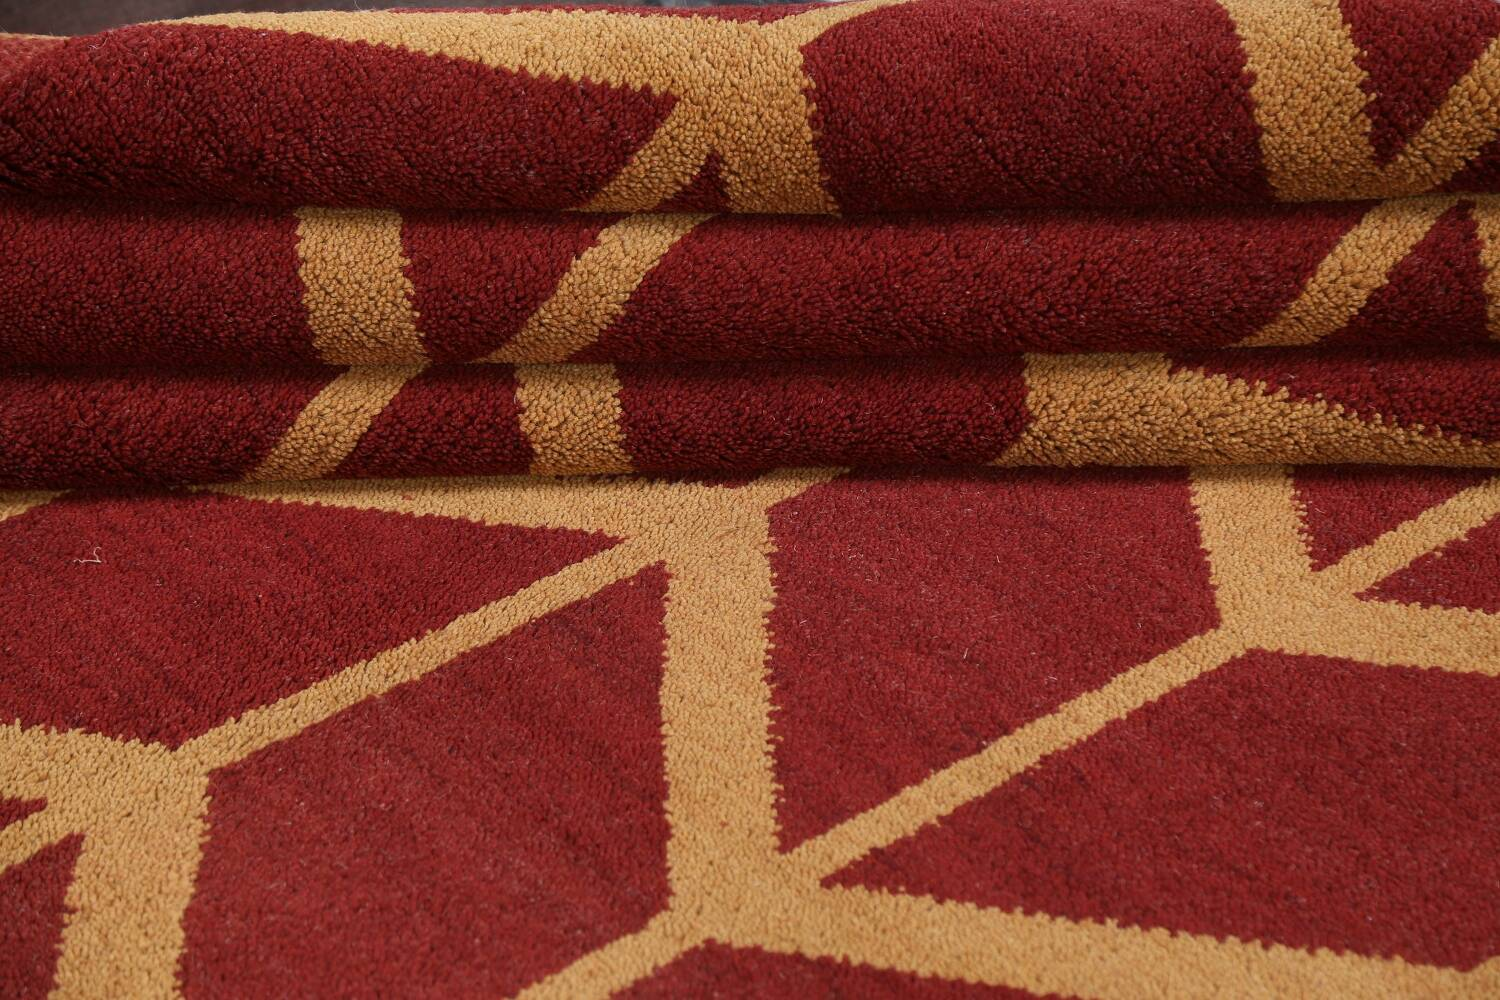 All-Over Moroccan Wool Area Rug 8x10 image 13